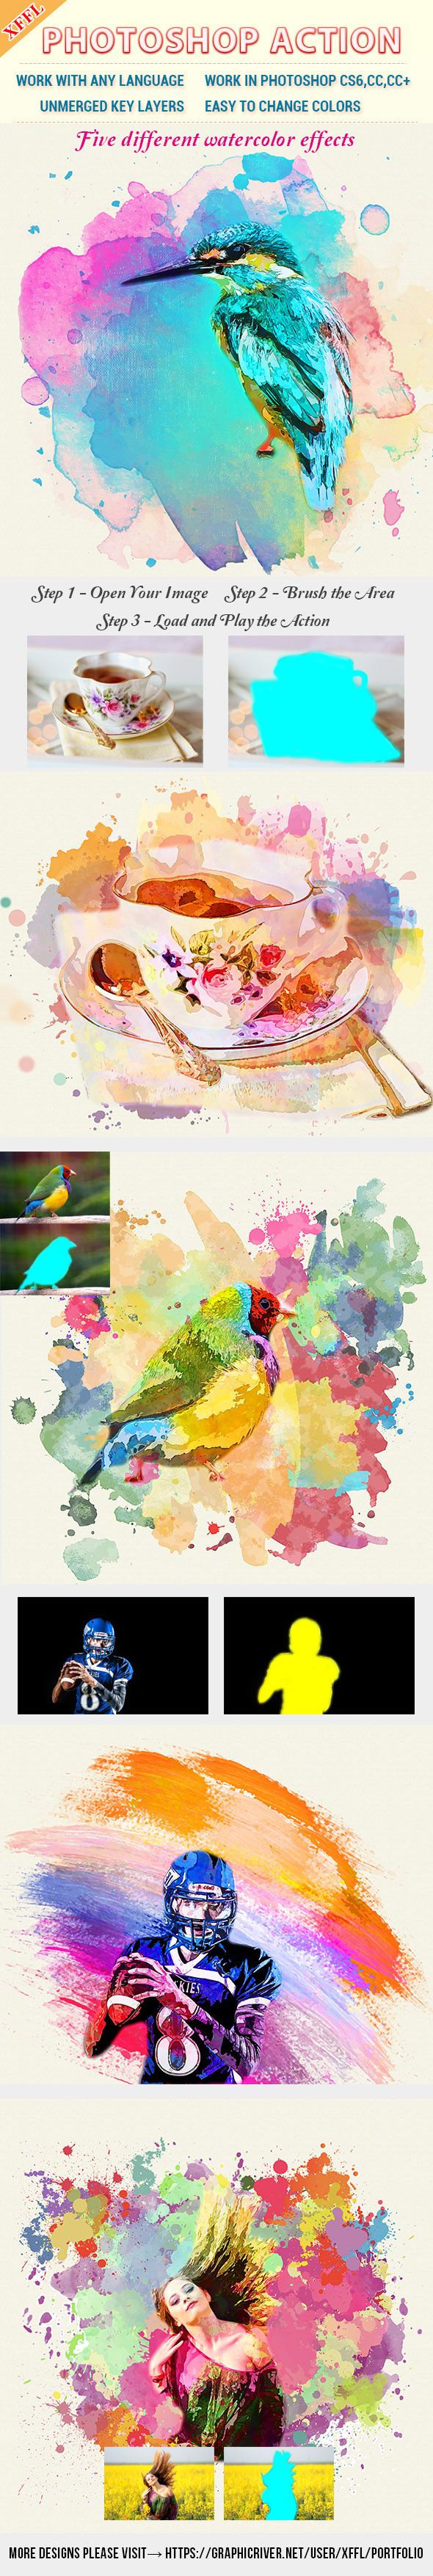 How to color your art in photoshop - Best 20 Photoshop Actions Ideas On Pinterest Photoshop Effects Photoshop And Double Exposure Photoshop Action